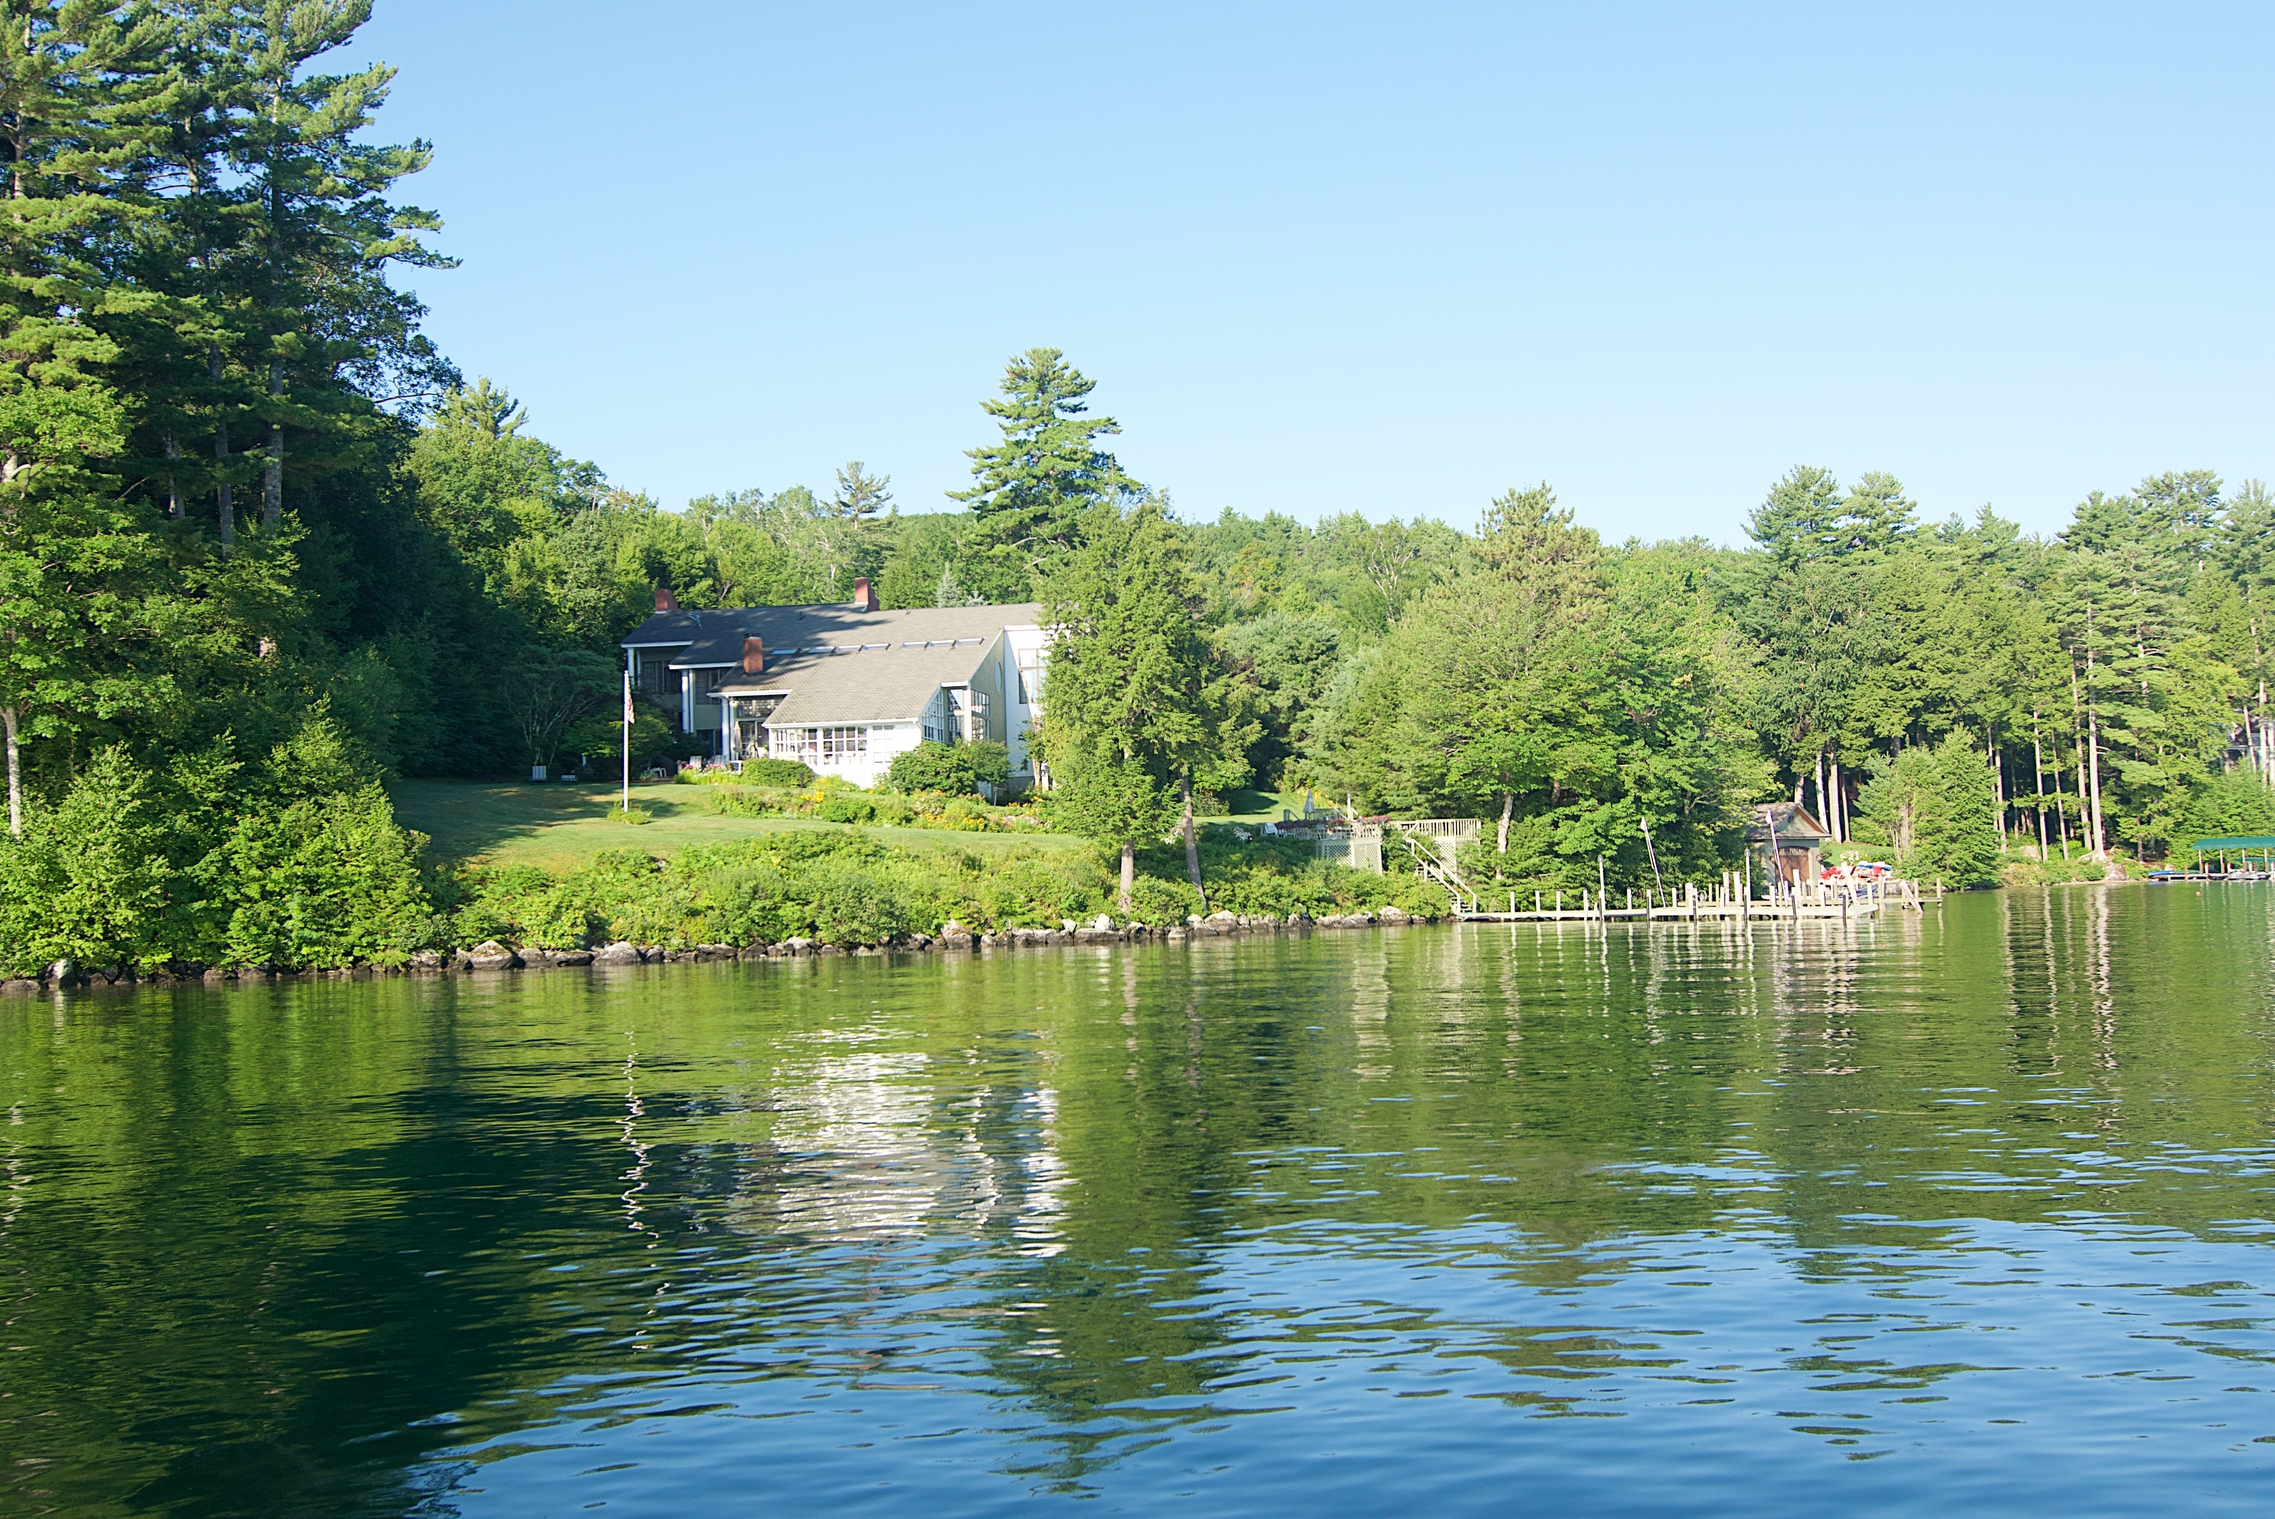 Single Family Home for Sale at 144 Veasey Shore Road, Meredith 144 Veasey Shore Rd Meredith, New Hampshire 03253 United States